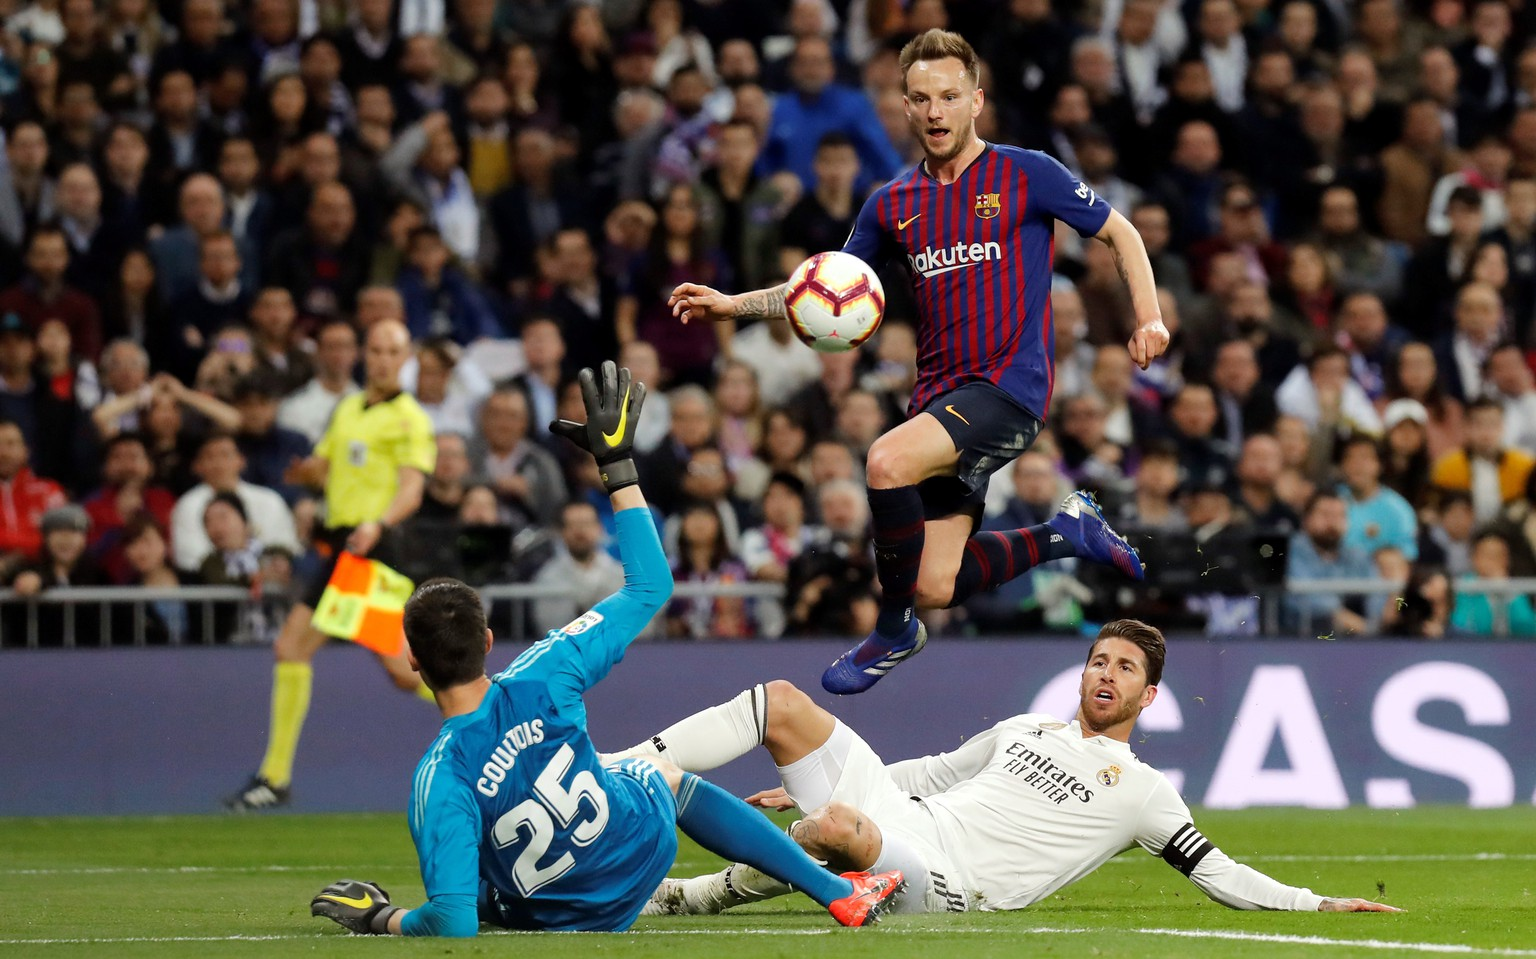 epa07409553 FC Barcelona's Ivan Rakitic (top) beats Real Madrid's goalkeeper Thibaut Courtois (bottom) and Sergio Ramos (R) to score the 0-1 lead during a Spanish LaLiga soccer match between Real Madrid and FC Barcelona at the Santiago Bernabeu stadium in Madrid, Spain, 02 March 2019.  EPA/Juan Carlos Hidalgo